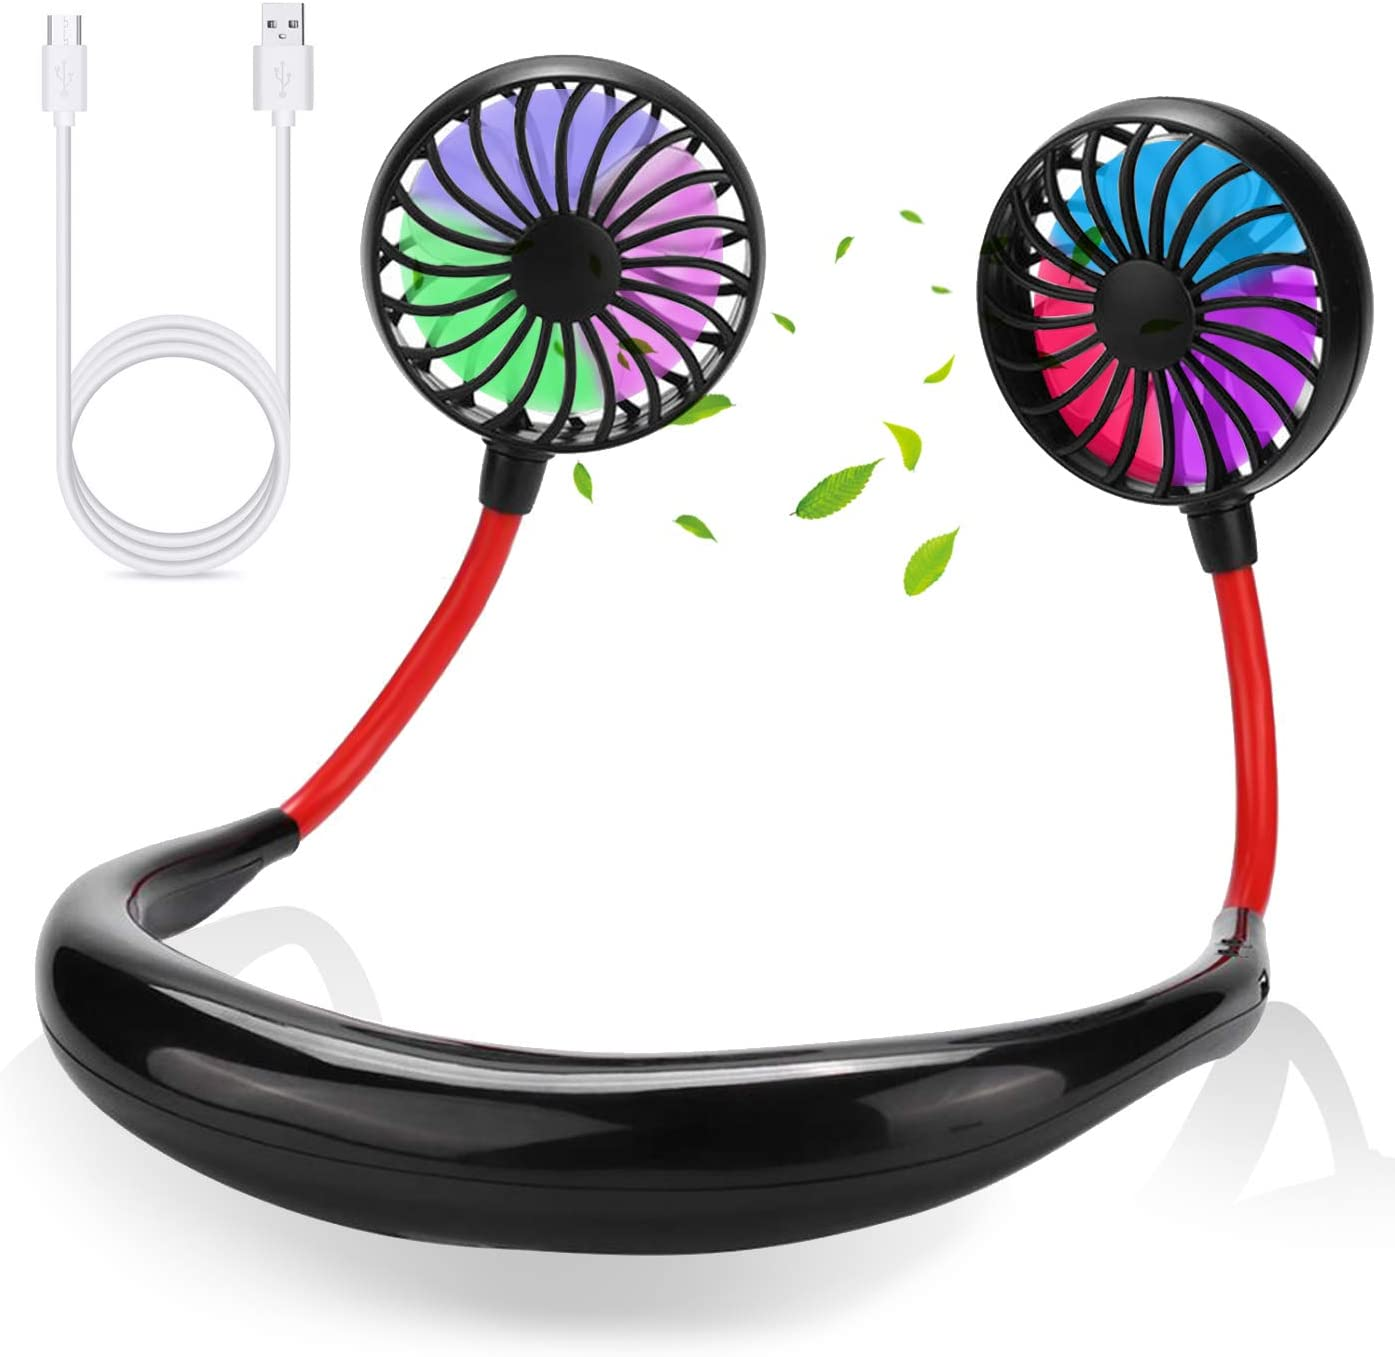 FIGROL Sports Hand Free Fan,Rechargeable Mini USB Fan with 2000mAh Battery,Headphone,Wearable,Neckband,Portable Fan with 360 Degree Adjustment Dual Wind Head for Running,Travel,Camping,Office